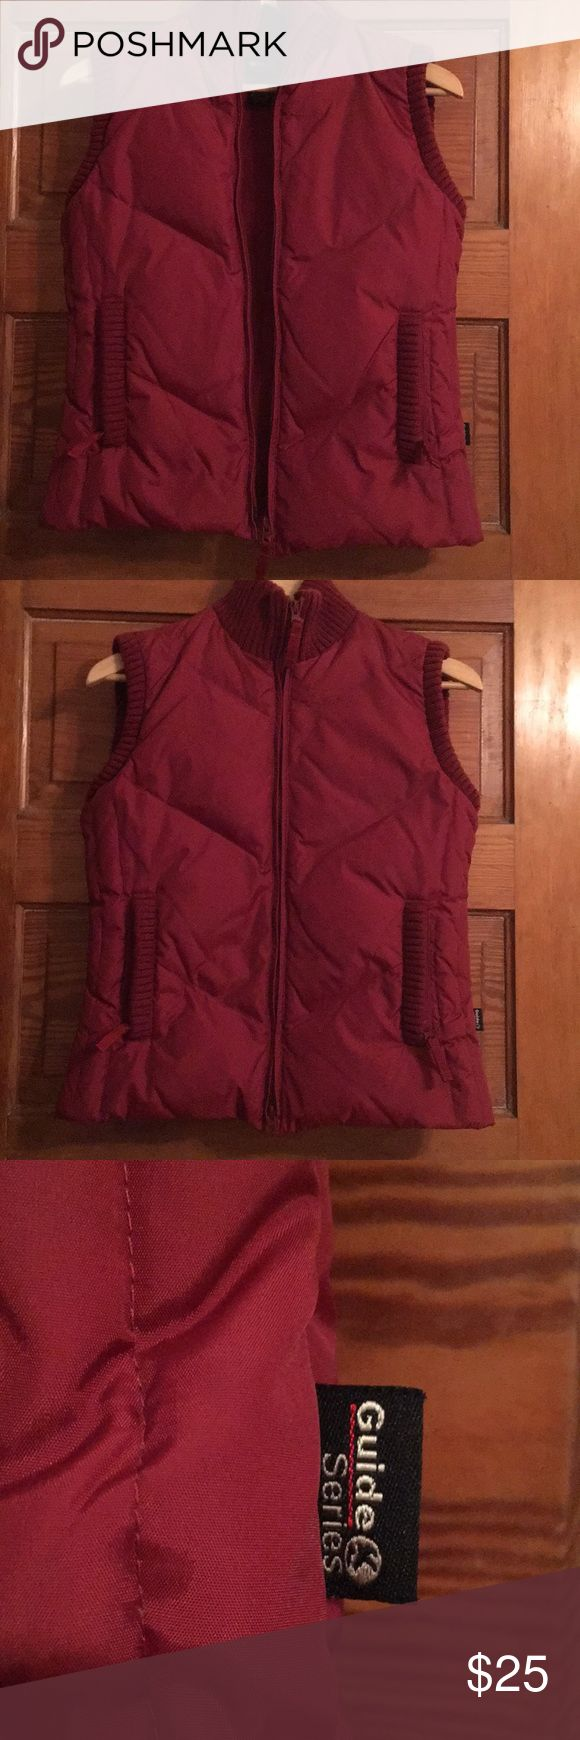 Guide Series Gander Mountain goose down vest Guide Series Vest in a beautiful deep red Very warm with 75% goose down fill Pre- owned, but in good shape.  See pics for both the inside and outside.  There is a little piling on the knit lining the armholes and pockets. Very slight.  Marked size s  Measurements  Pit to pit almost 18 inches  From the zipped up collar to hem 23 inches Gander Mountain Jackets & Coats Vests